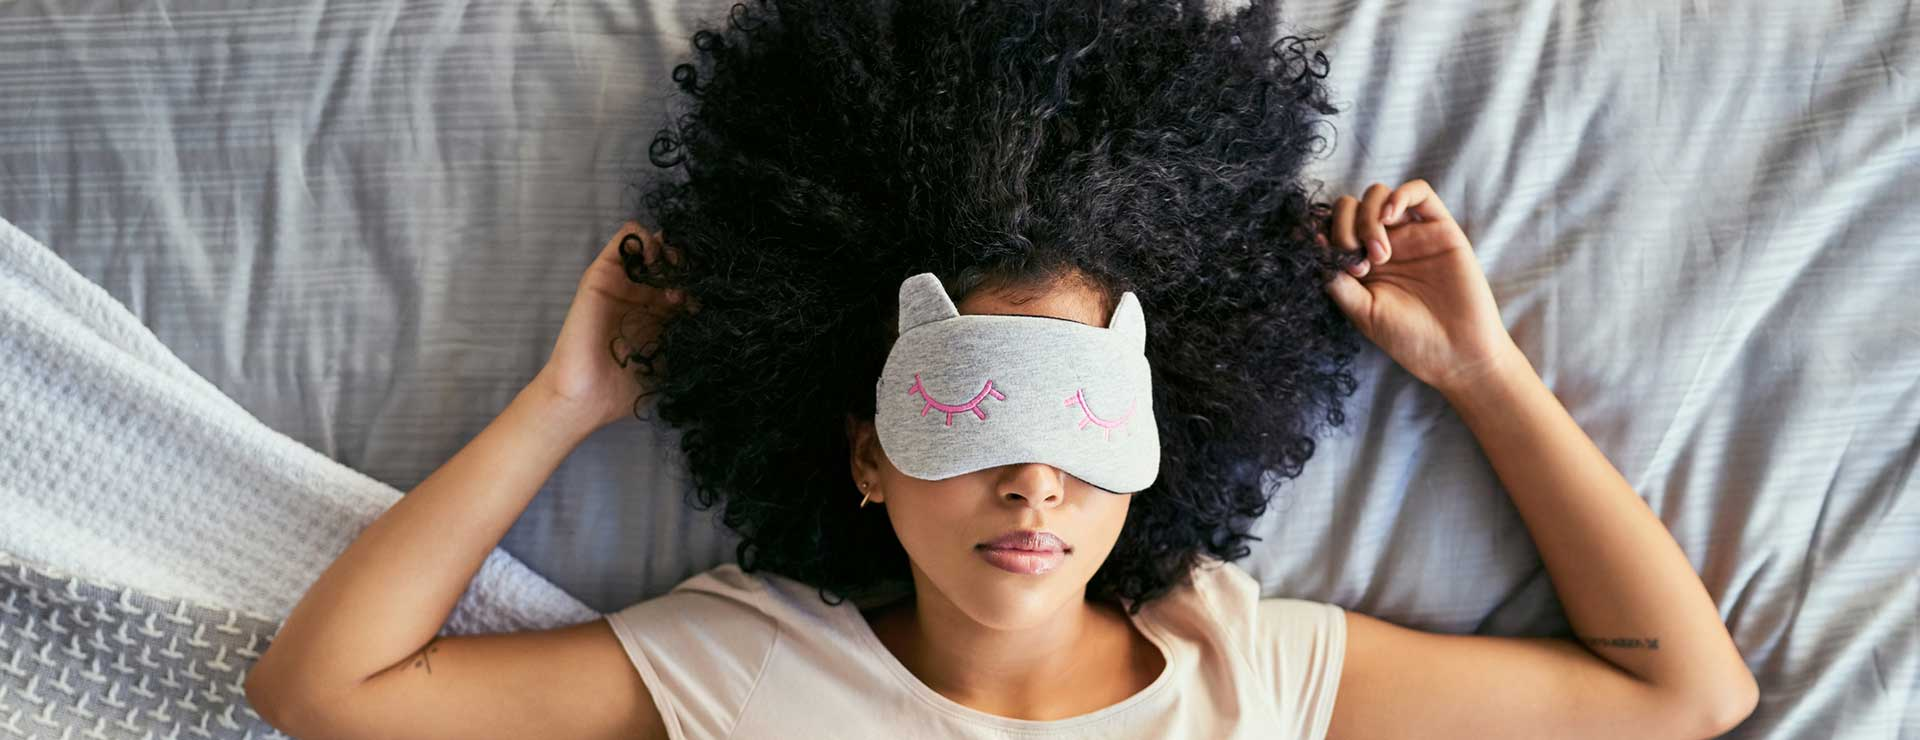 Good Sleep May Be All in Your Head